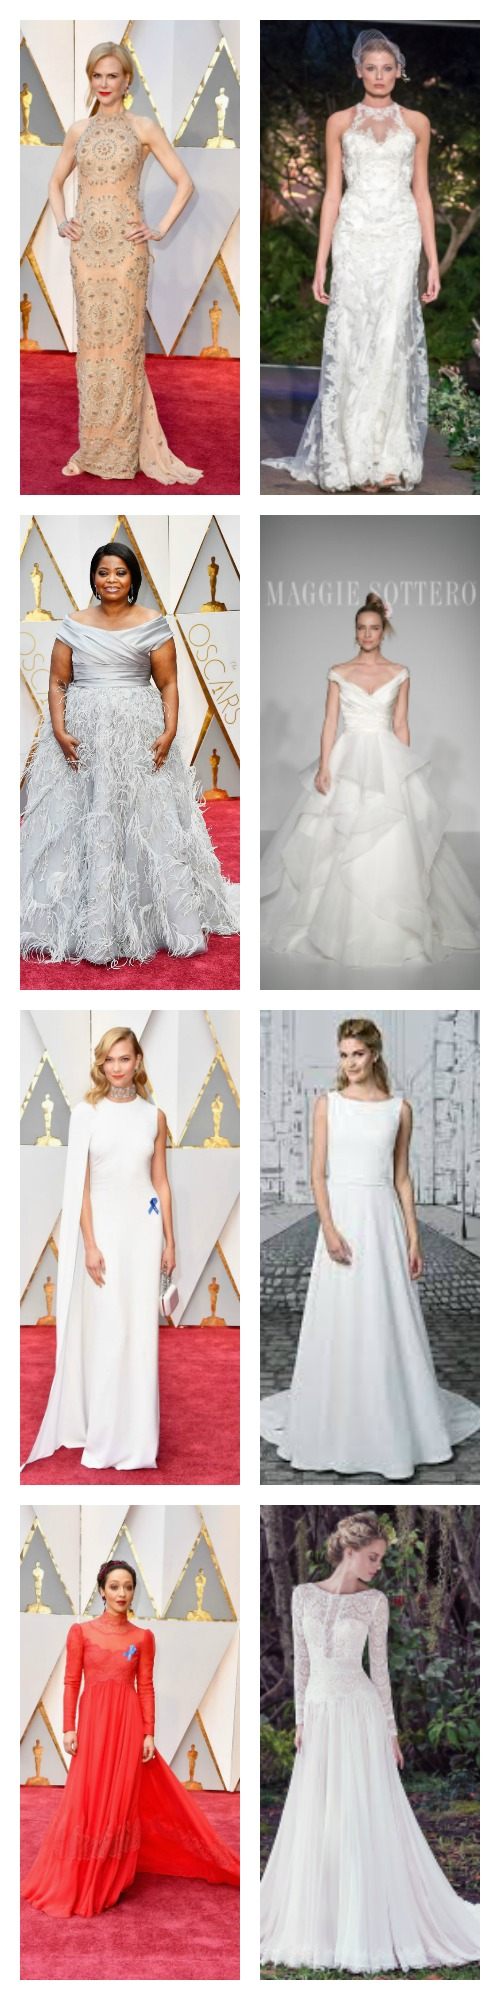 oscars collage